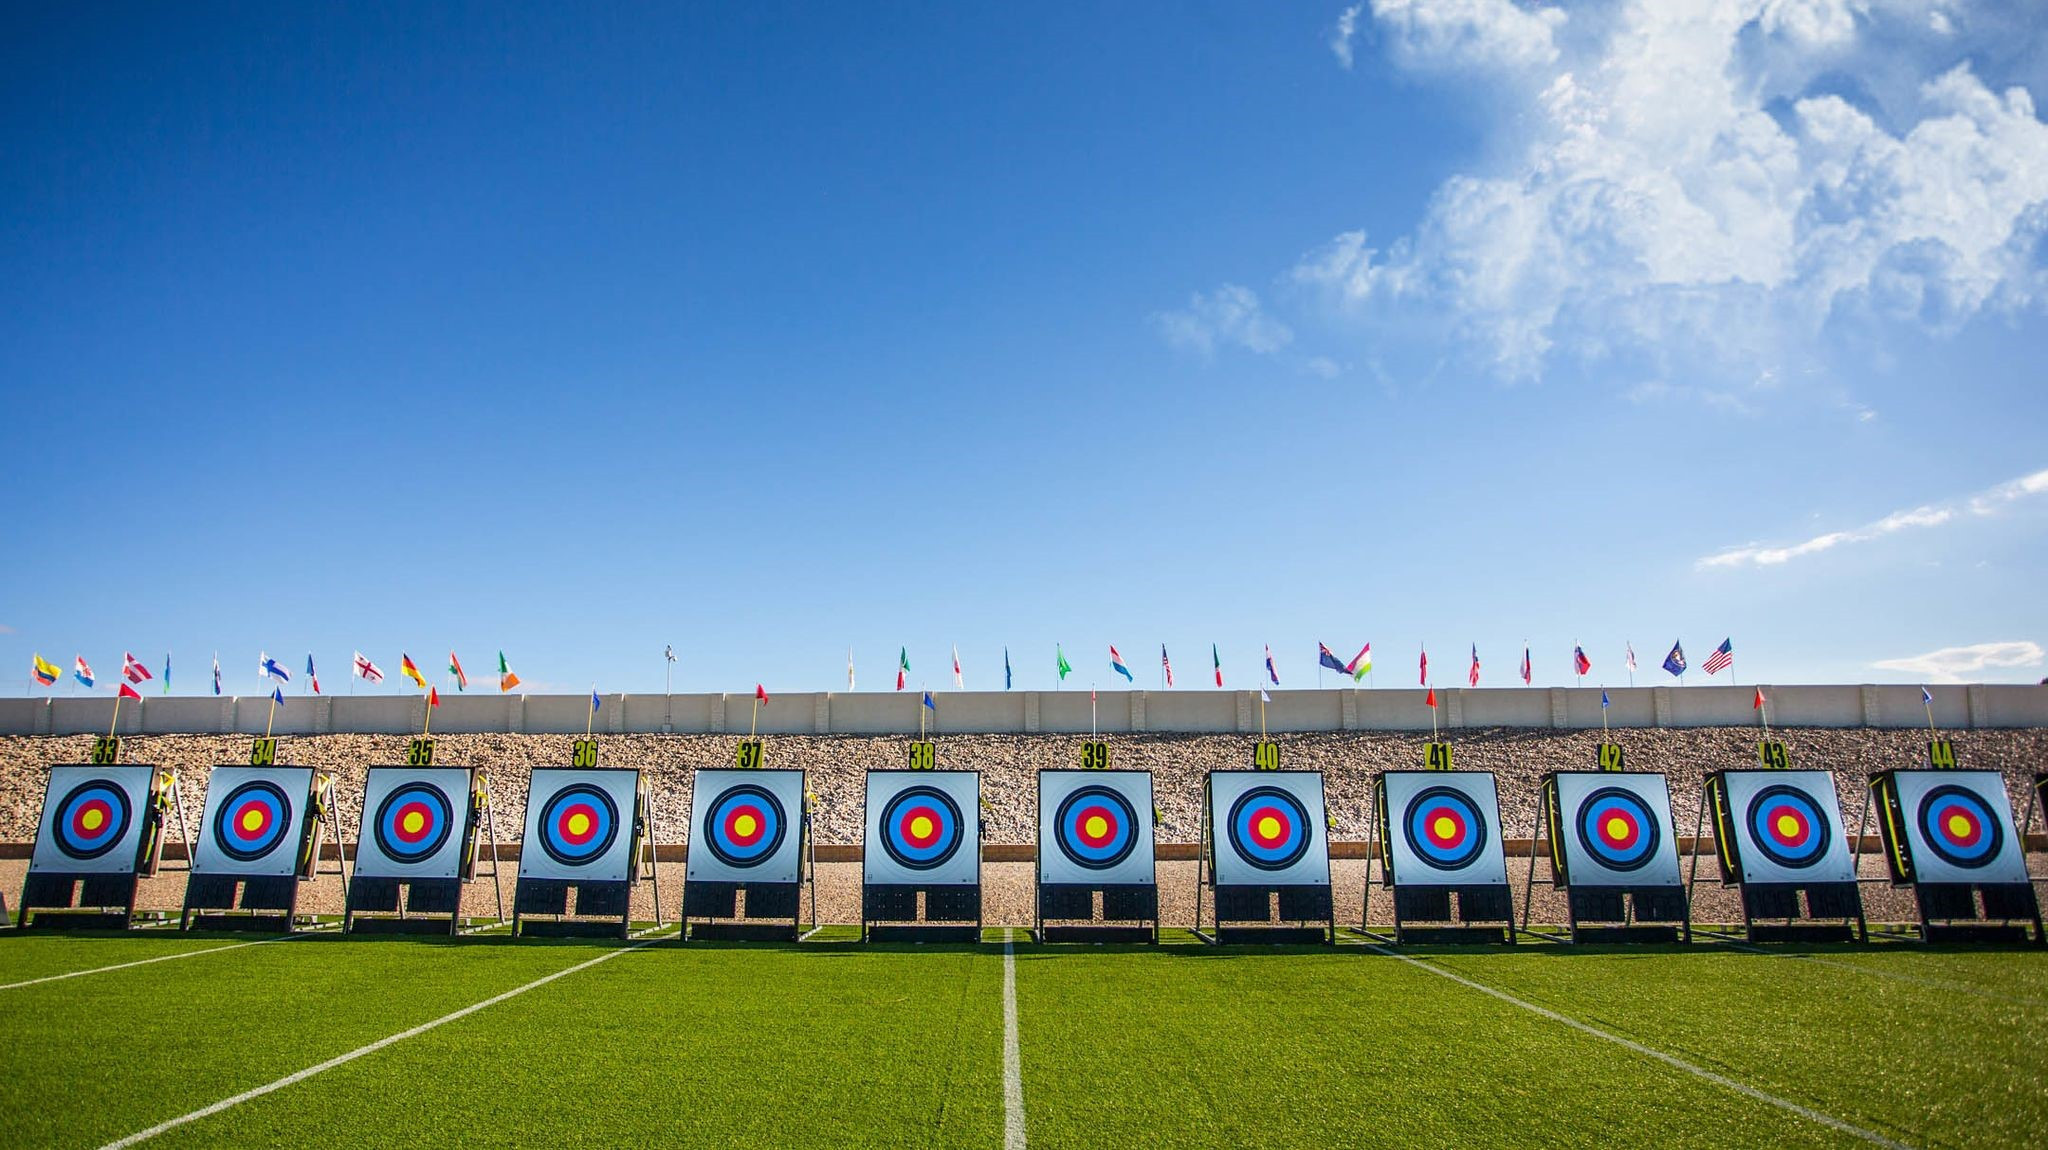 World Archery extend partnership deal with target maker Rinehart